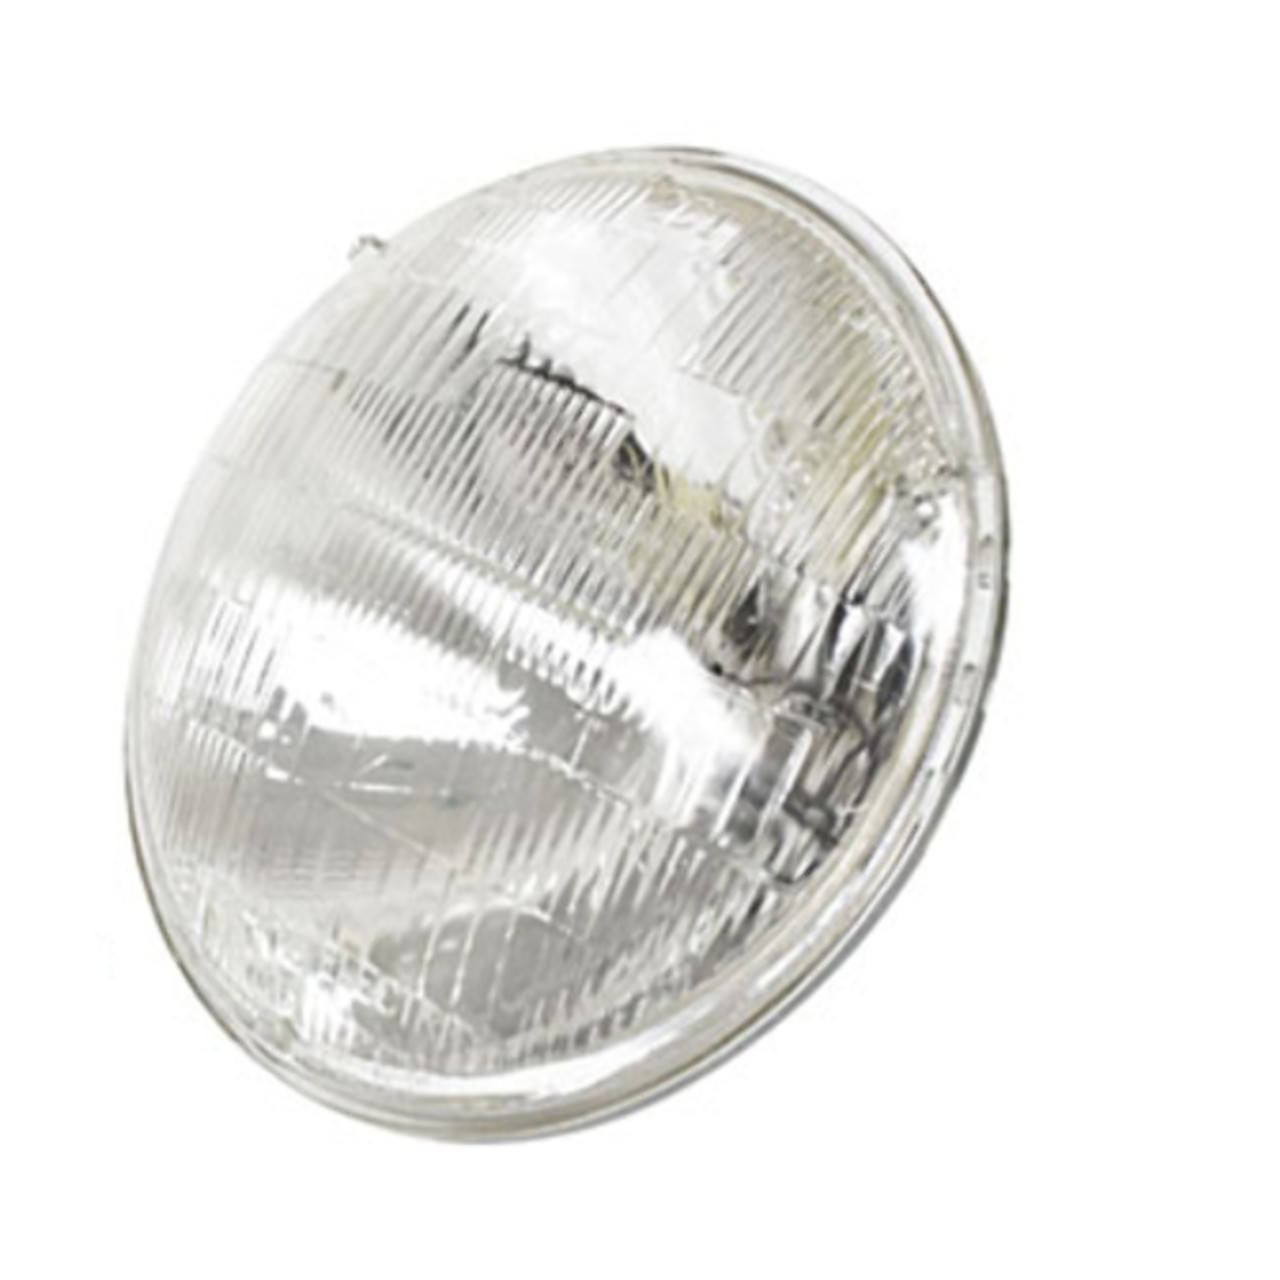 """00-9304-0 7"""" Sealed Beam Hi/Low Bulb Only, 12 Volt, Each (Boxed)"""